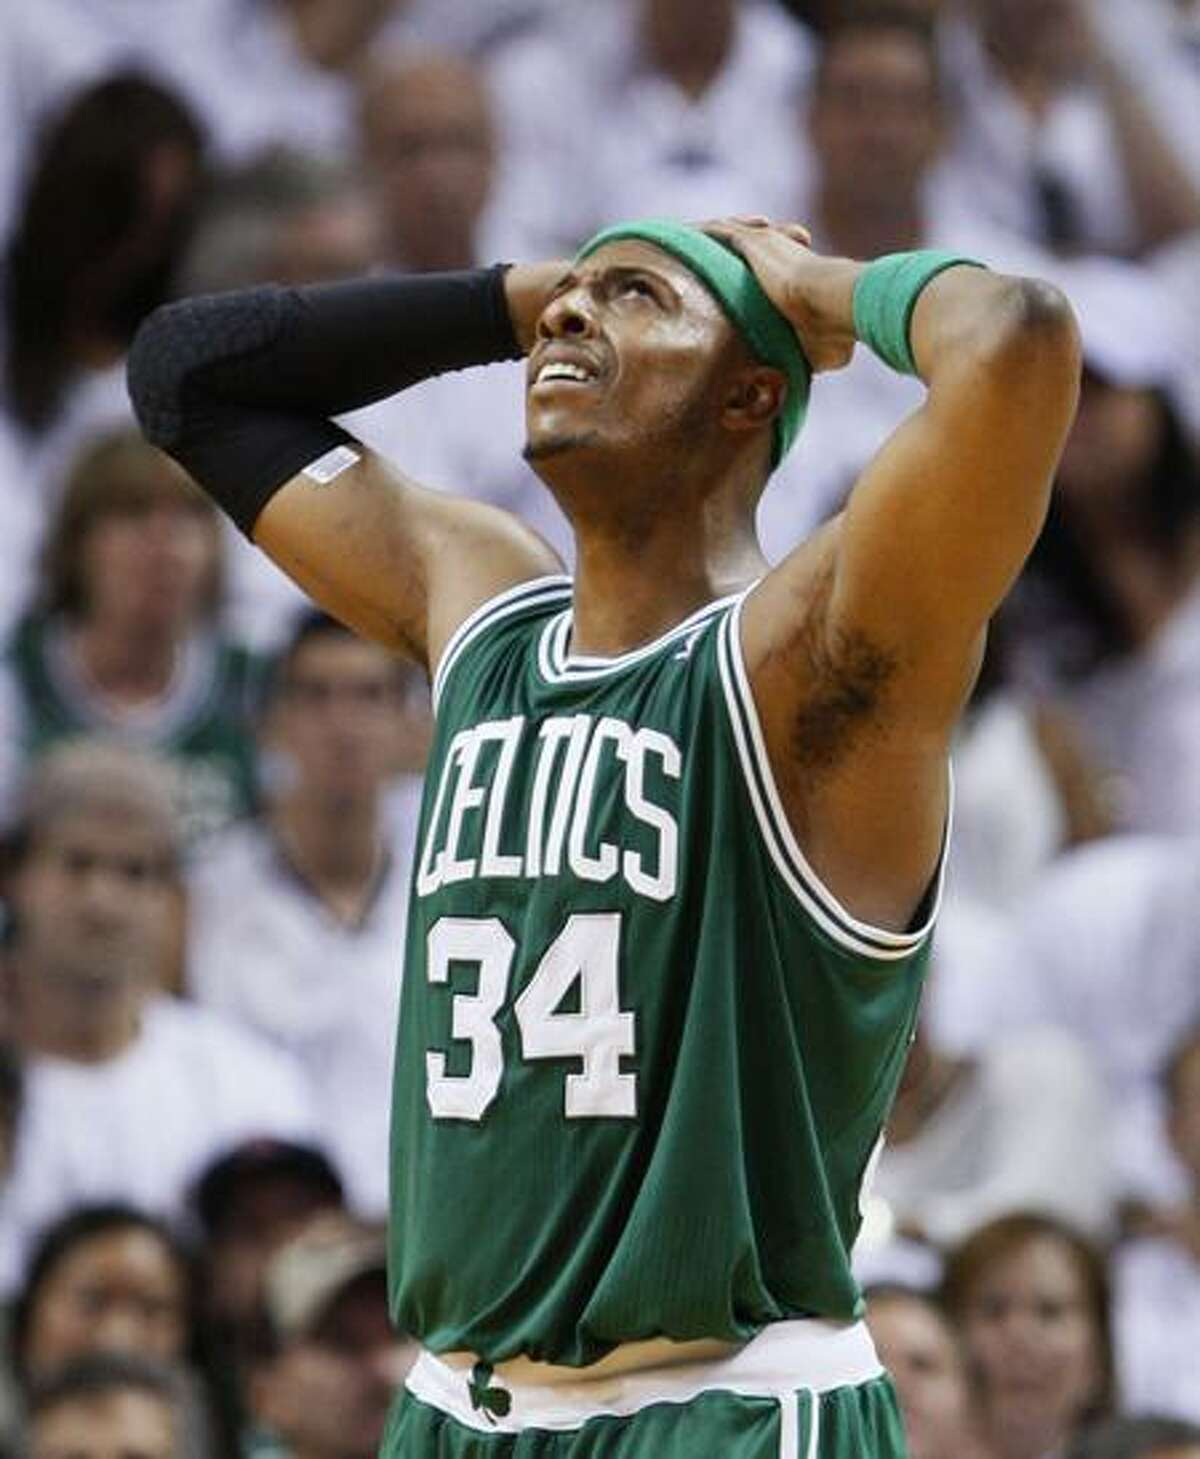 Boston Celtics' Paul Pierce reacts to a call against a teammate during the second half of Game 1 of a second-round NBA playoff basketball series against the Miami Heat, Sunday, May 1, 2011, in Miami. The Heat defeated the Celtics 99-90. (AP Photo/Wilfredo Lee)